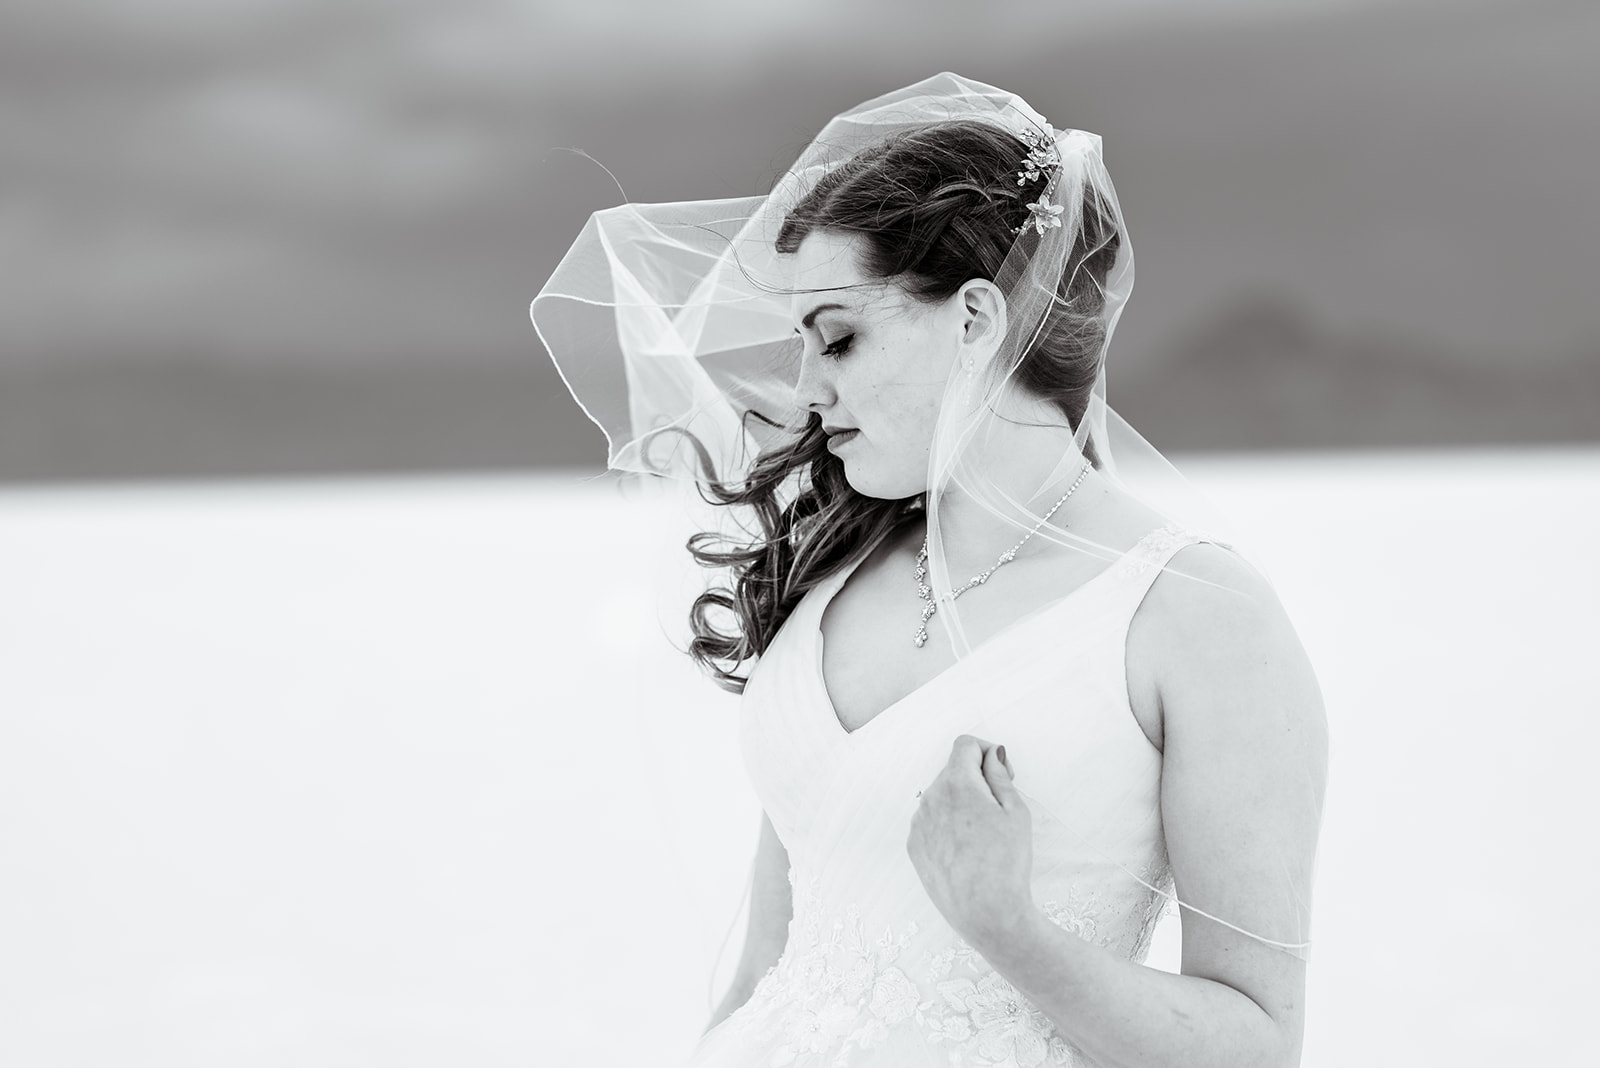 Romantic black and white bridal portrait of Adri at the Bonneville Salt Falts in Utah. Embrace the wind! Taken by Coley Cook Photography.